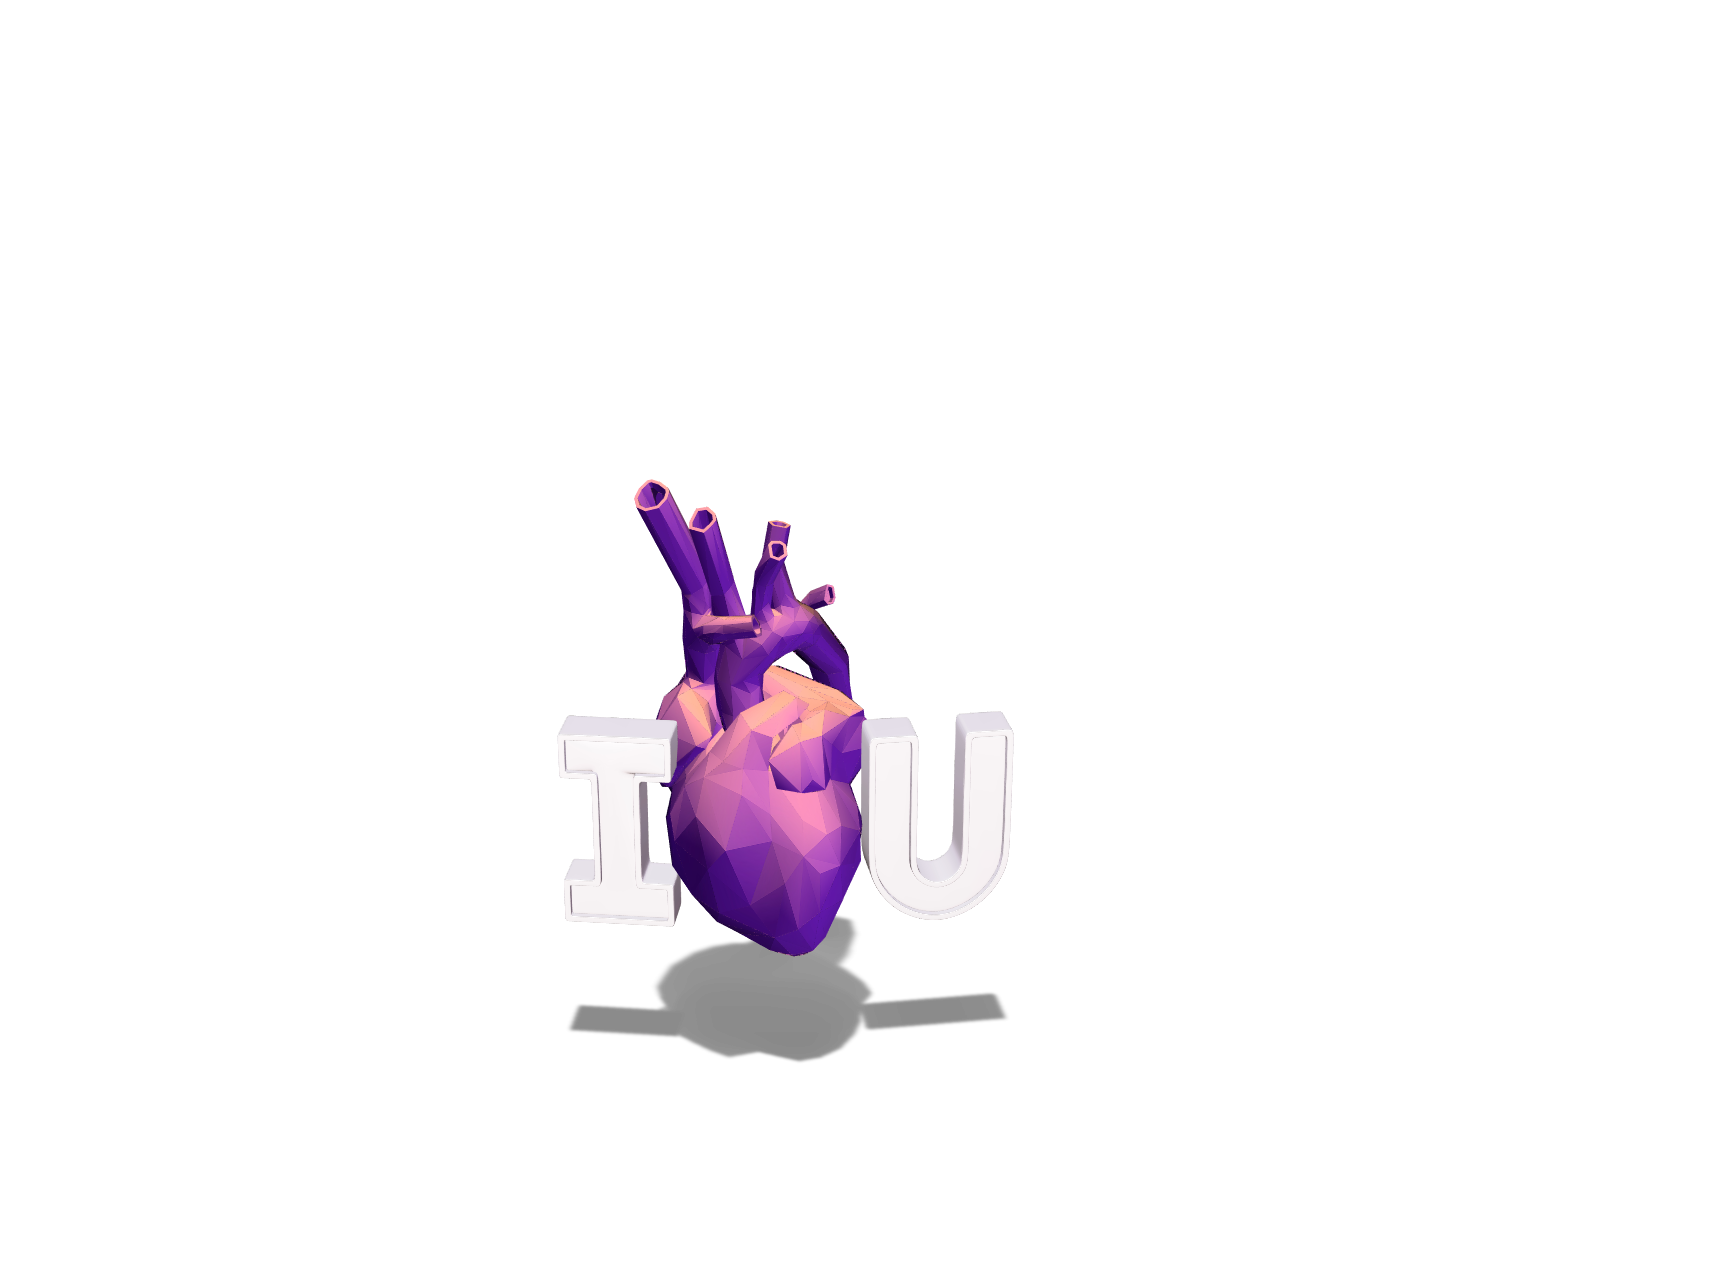 I Love U | Valentine's Day Card - 3D design by Po Cheng Shen Mar 7, 2018